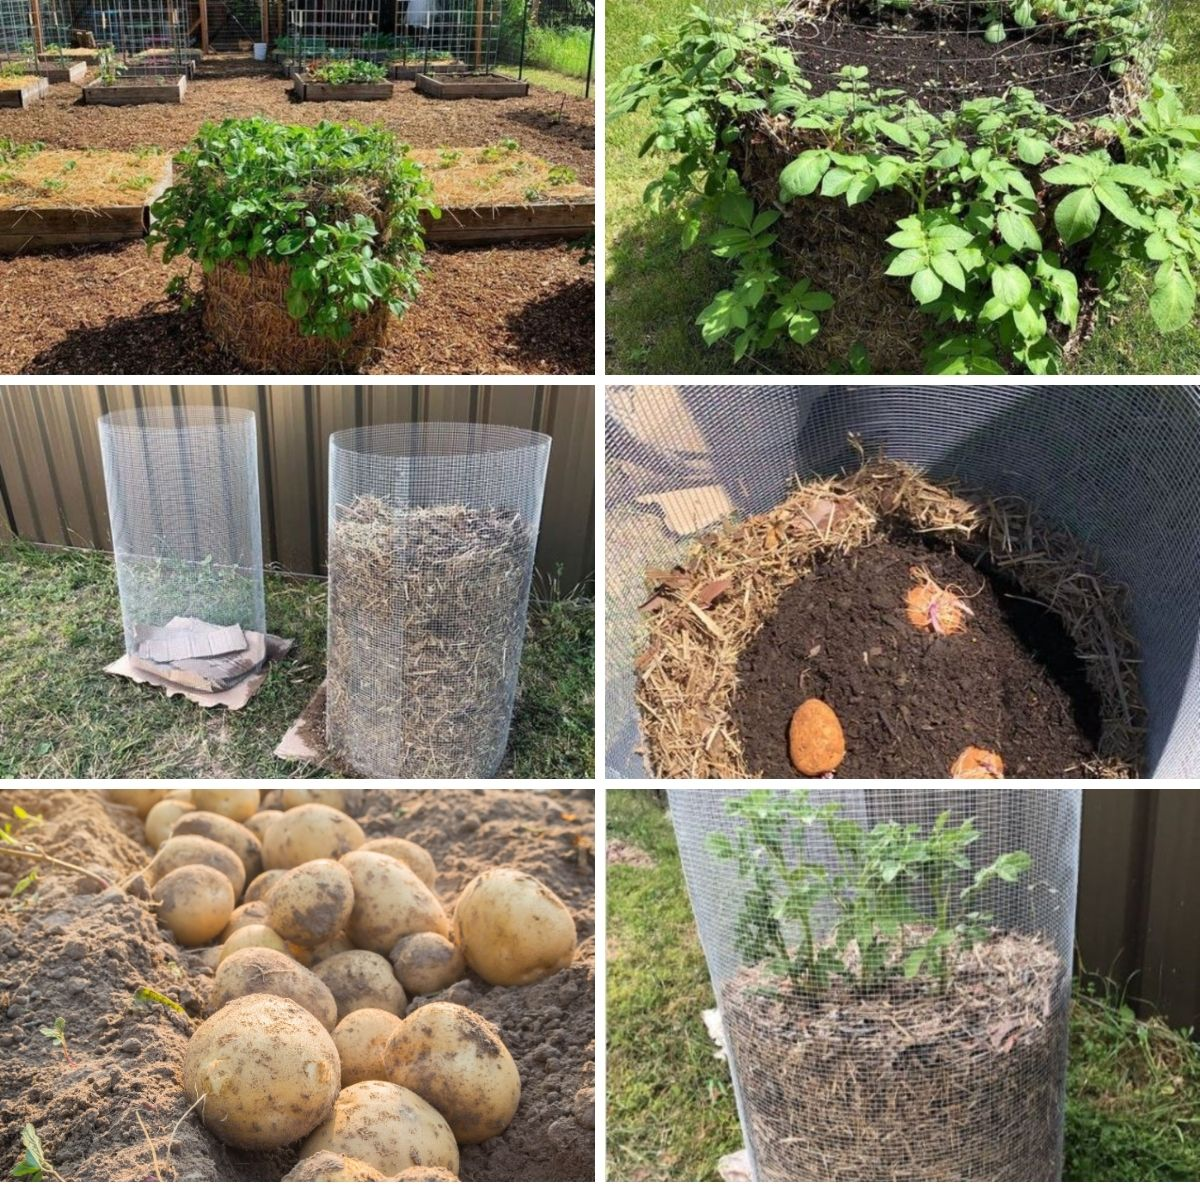 Potato tower planting examples in a collage.